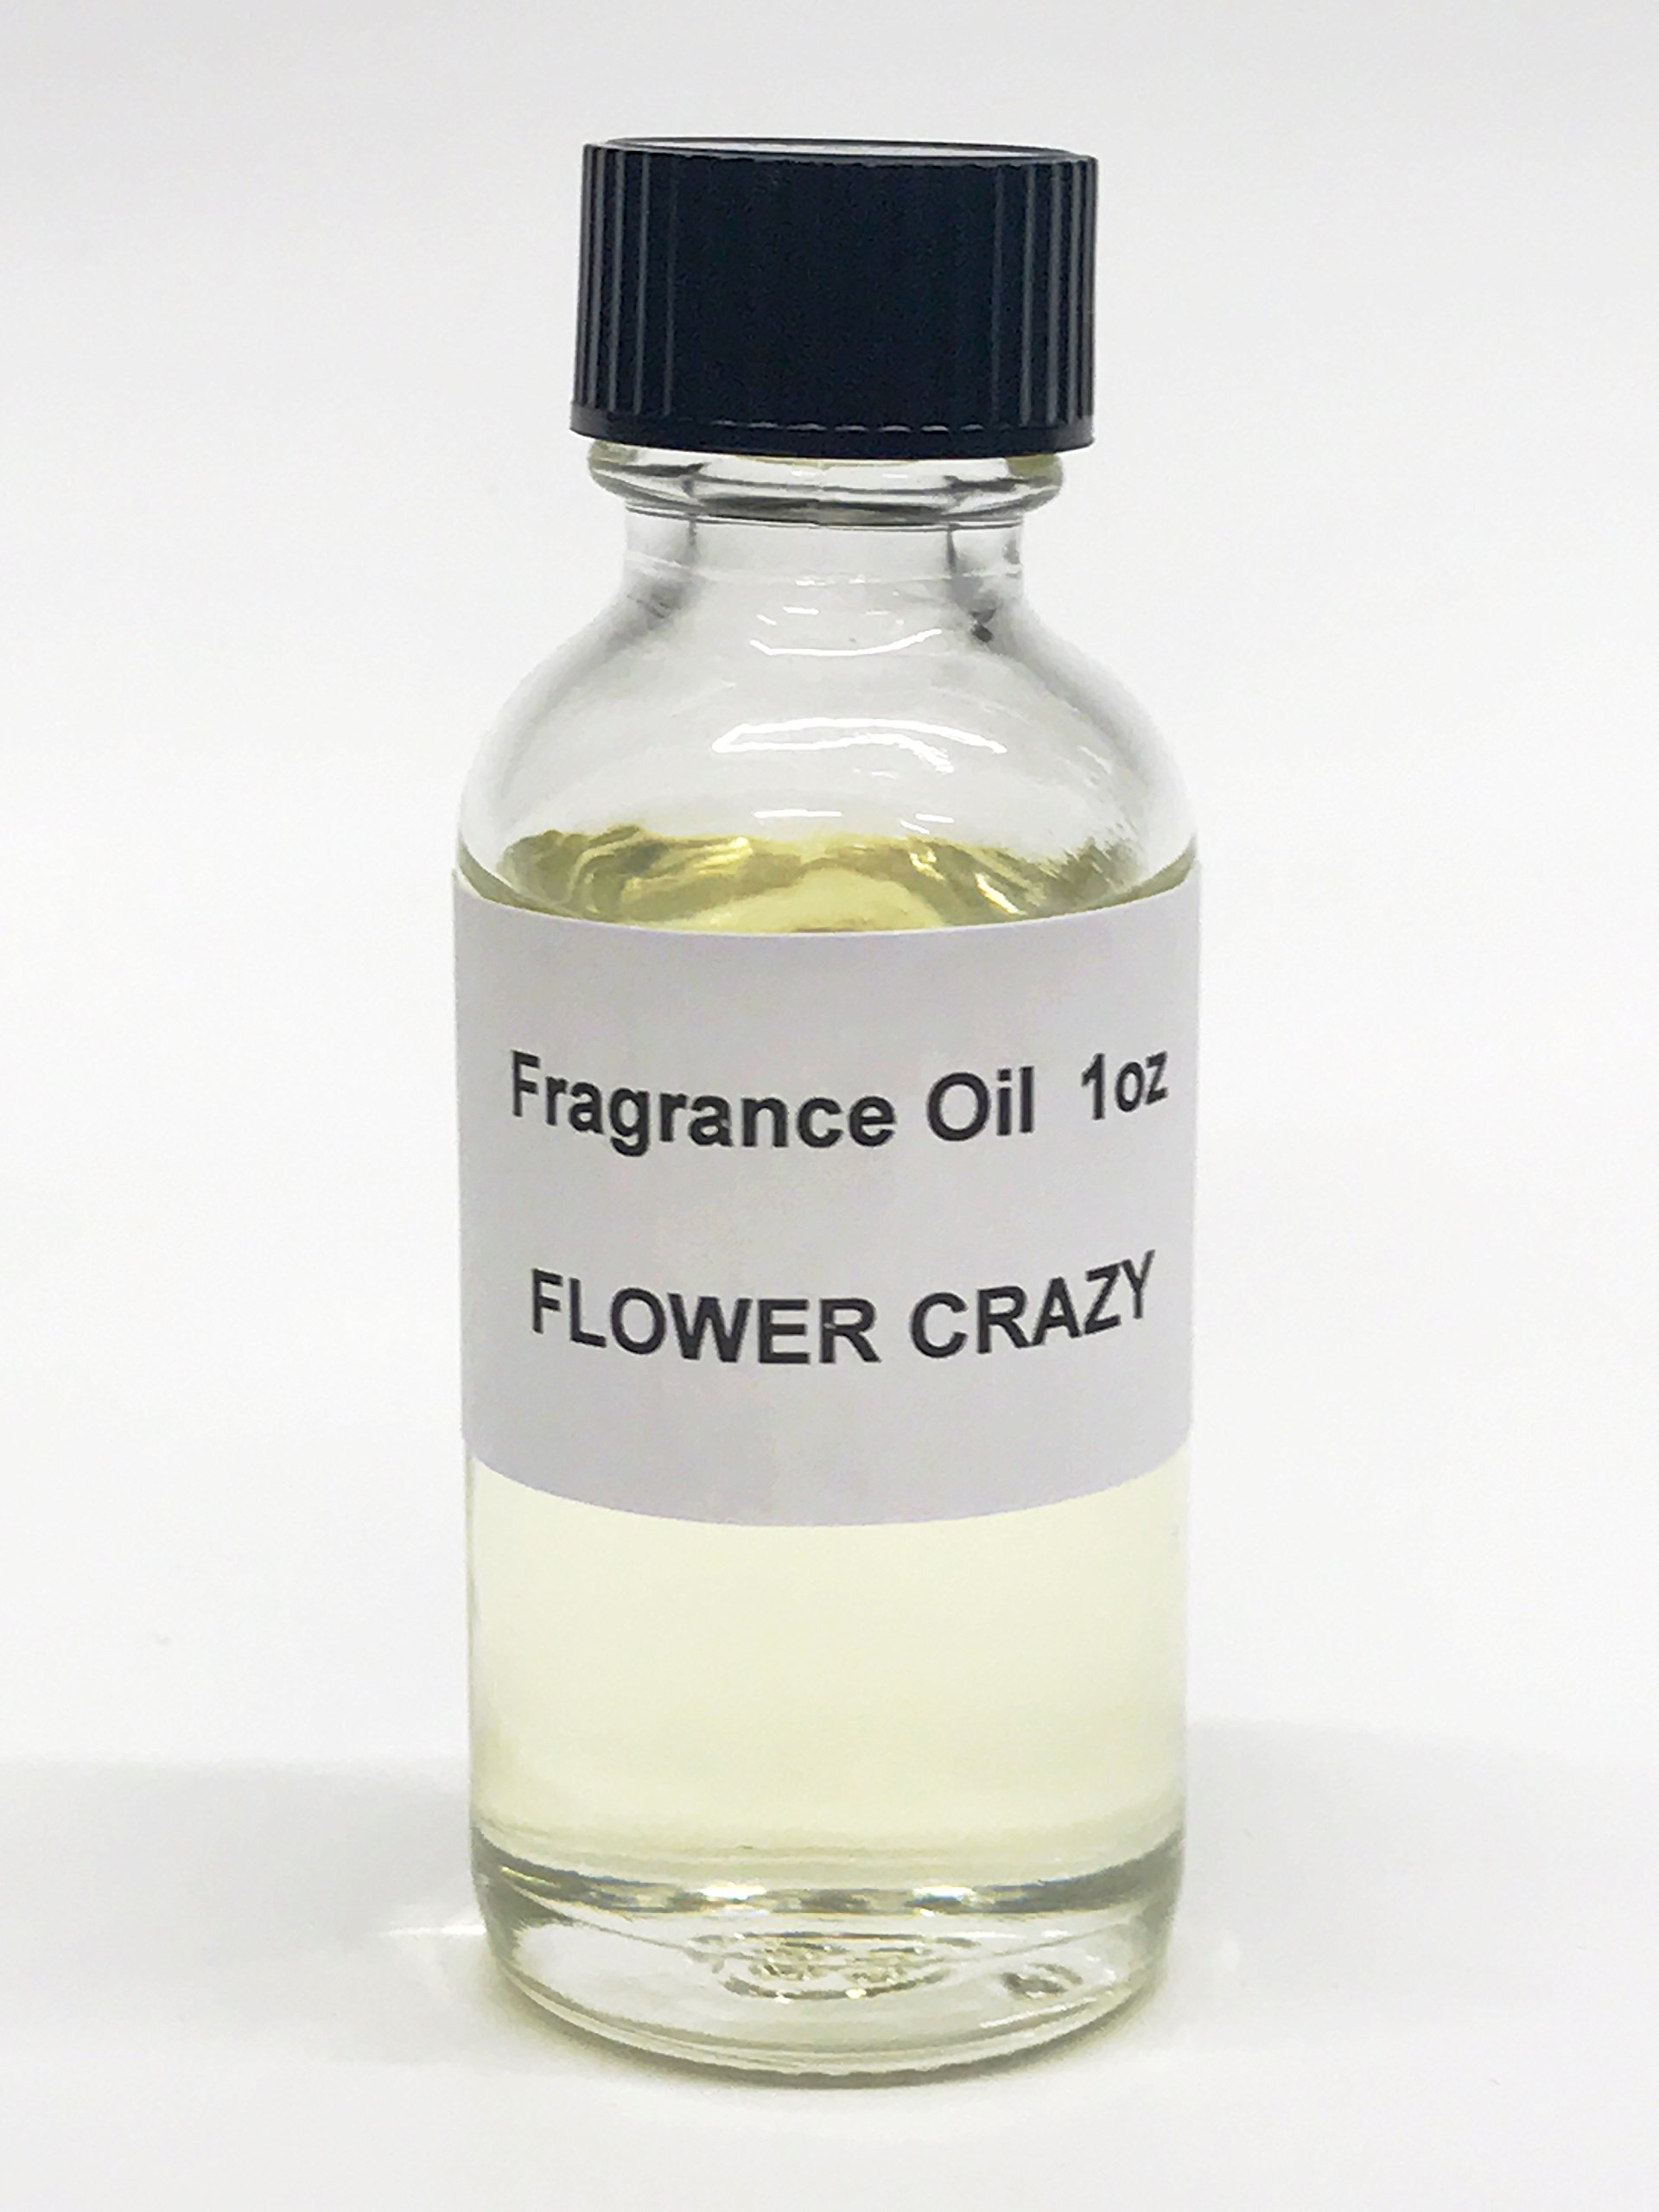 Flower Crazy Fragrance Oil Perfume Body Oil 1oz Alcohol-Free Made in the USA